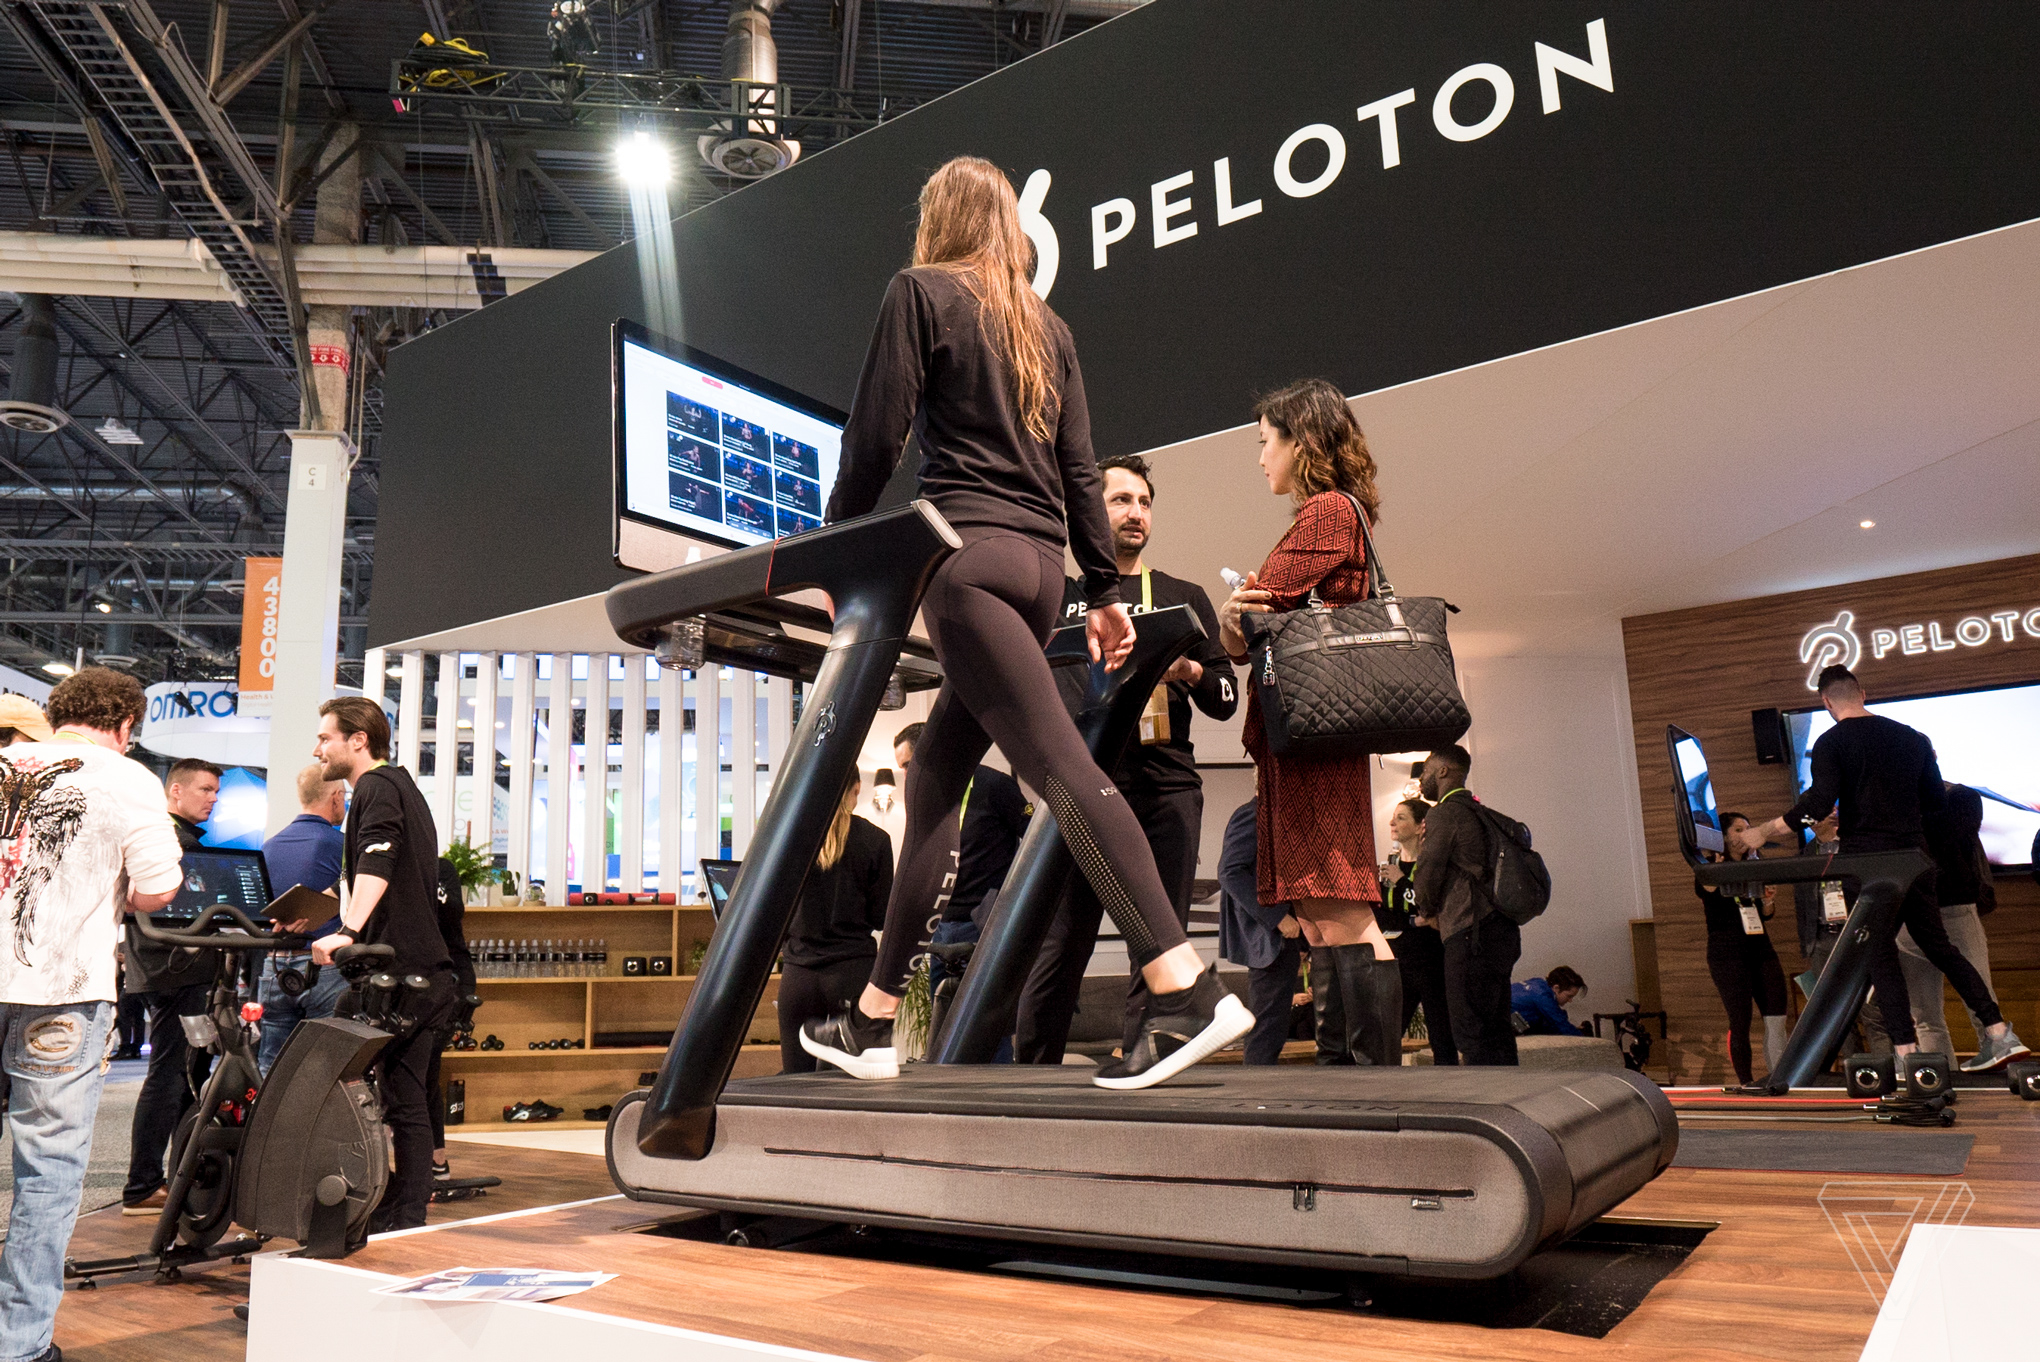 Peloton Tread is the treadmill I want but can't afford - The